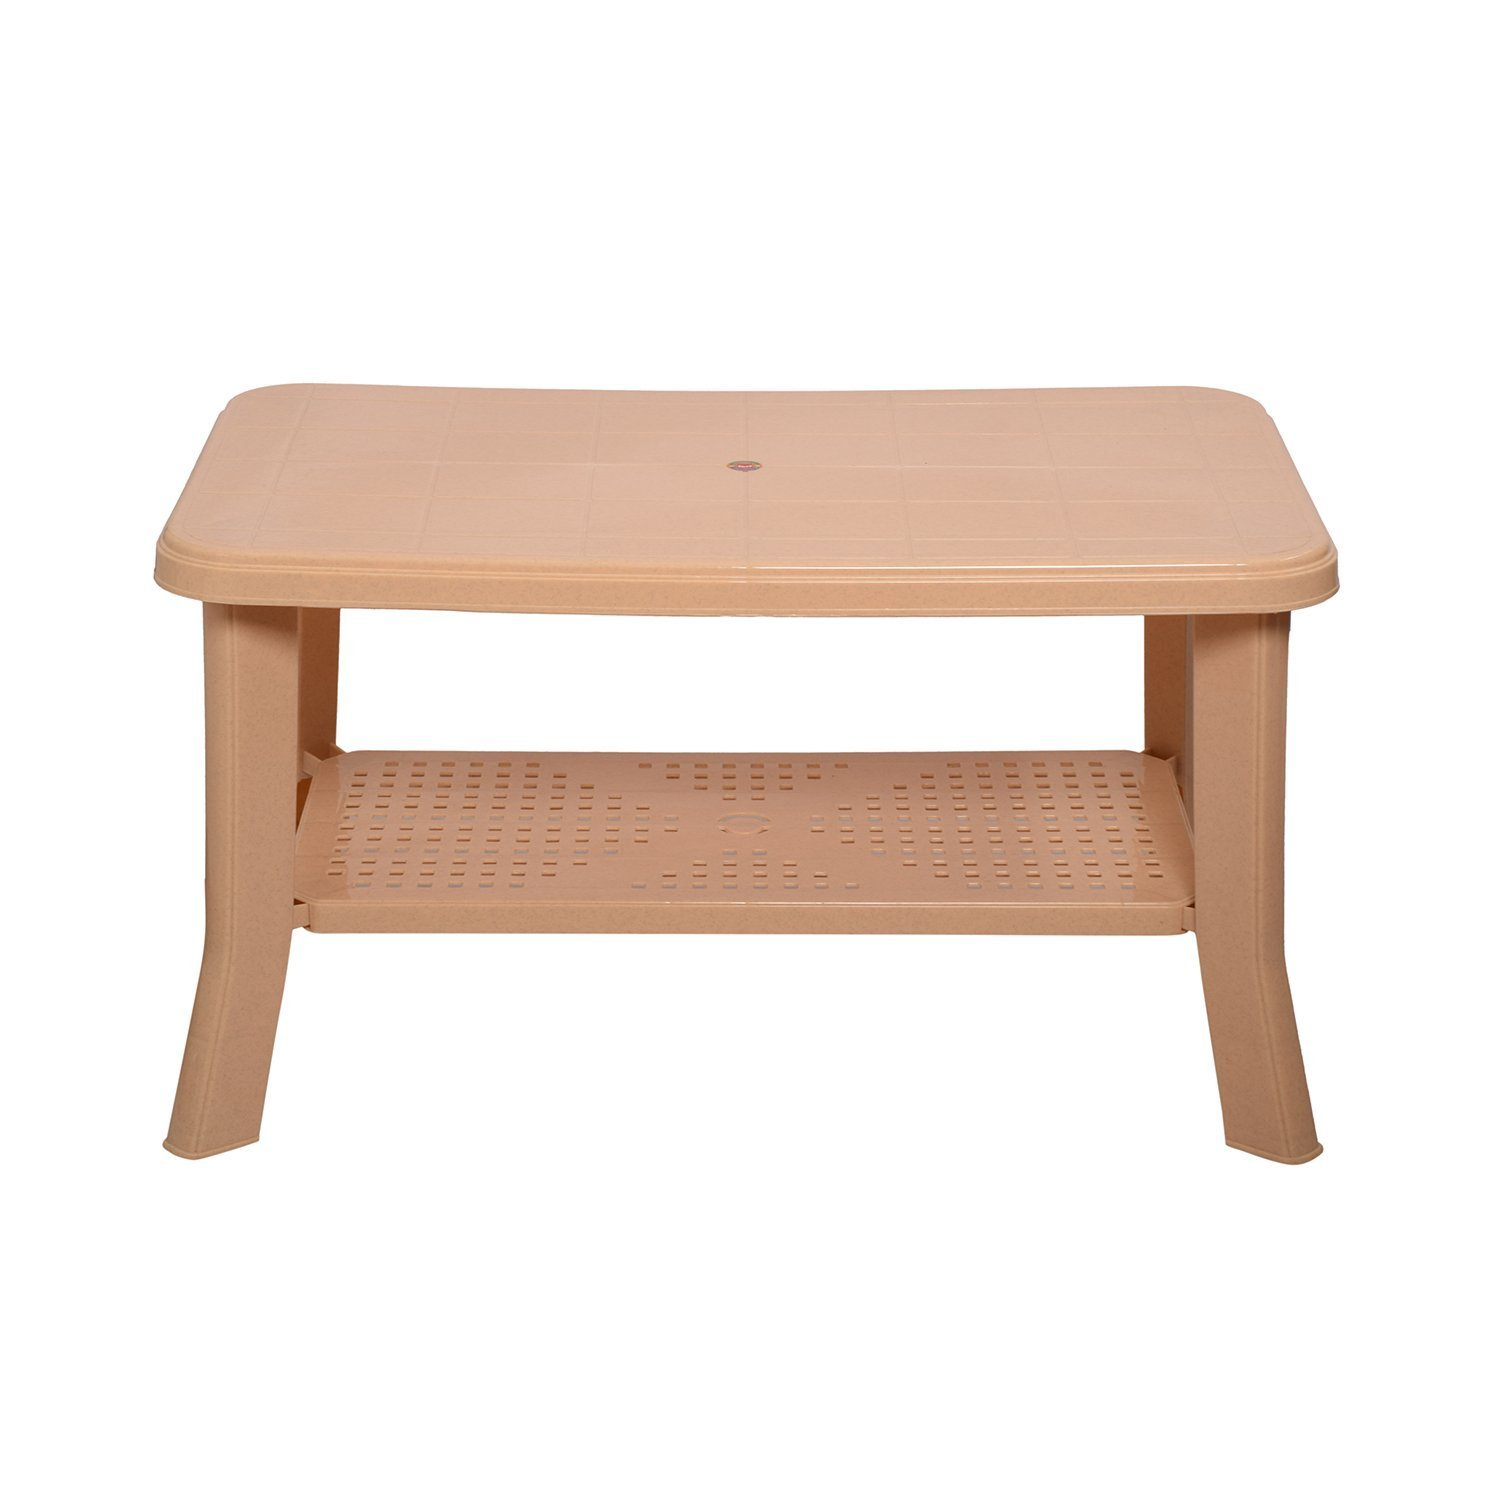 Super Cheap Centre Table Find Centre Table Deals On Line At Caraccident5 Cool Chair Designs And Ideas Caraccident5Info